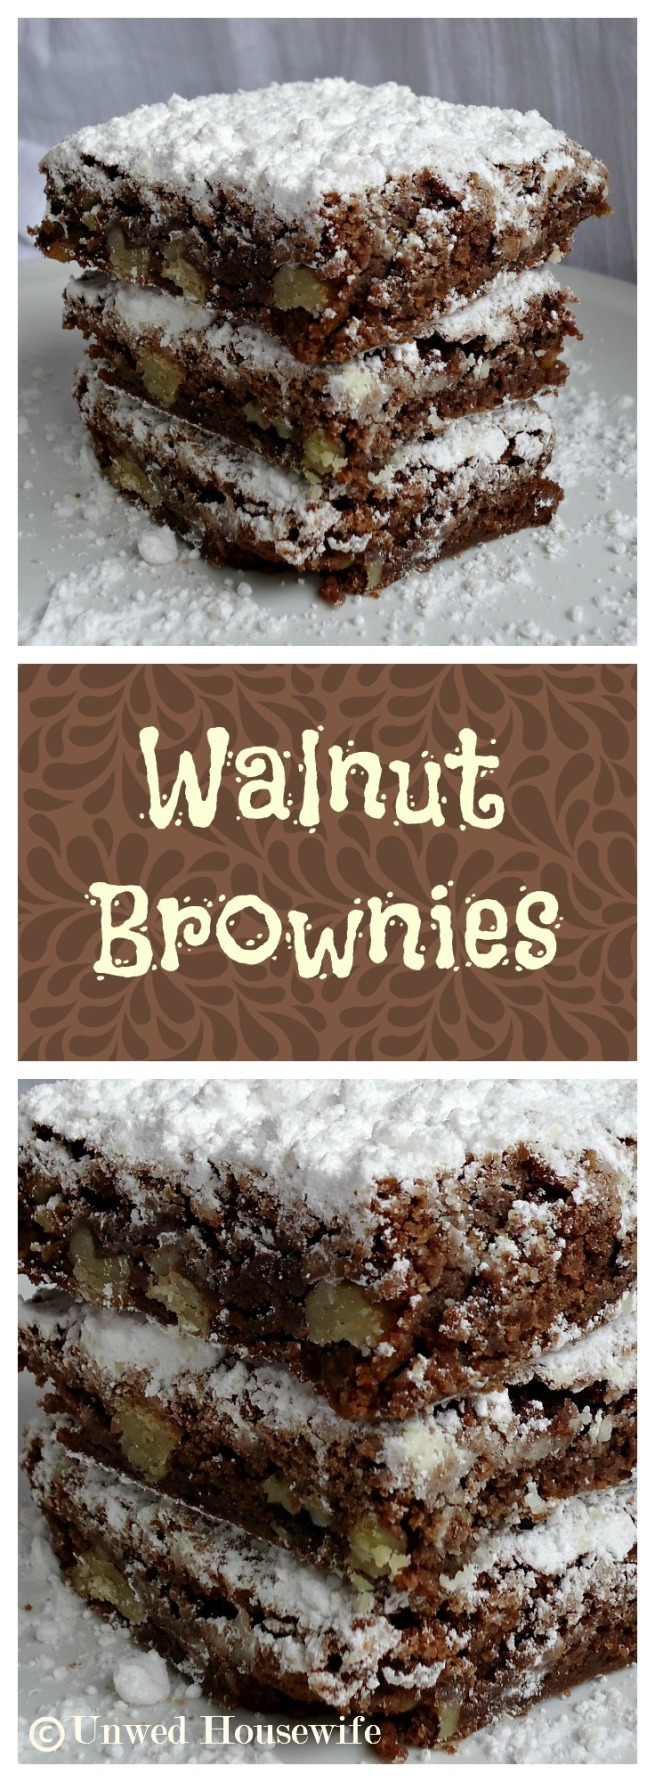 Walnut Brownies Pinterest